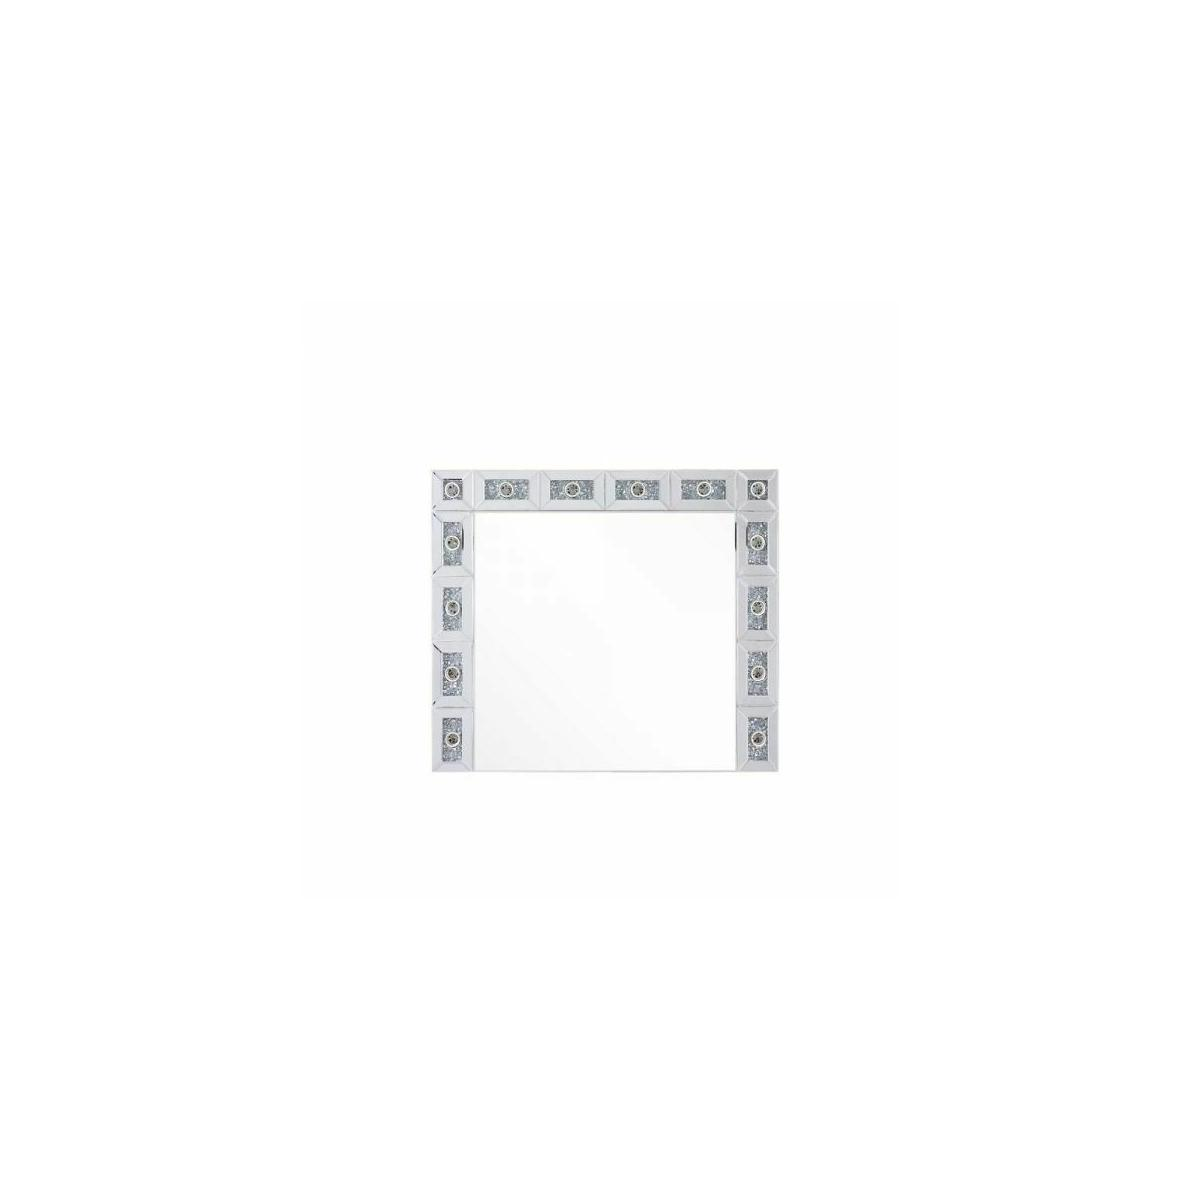 ACME Noralie Wall Decor - 97746 - Glam - LED Light, Mirror, Glass, MDF, Faux Diamonds (Acrylic) - Mirrored and Faux Diamonds